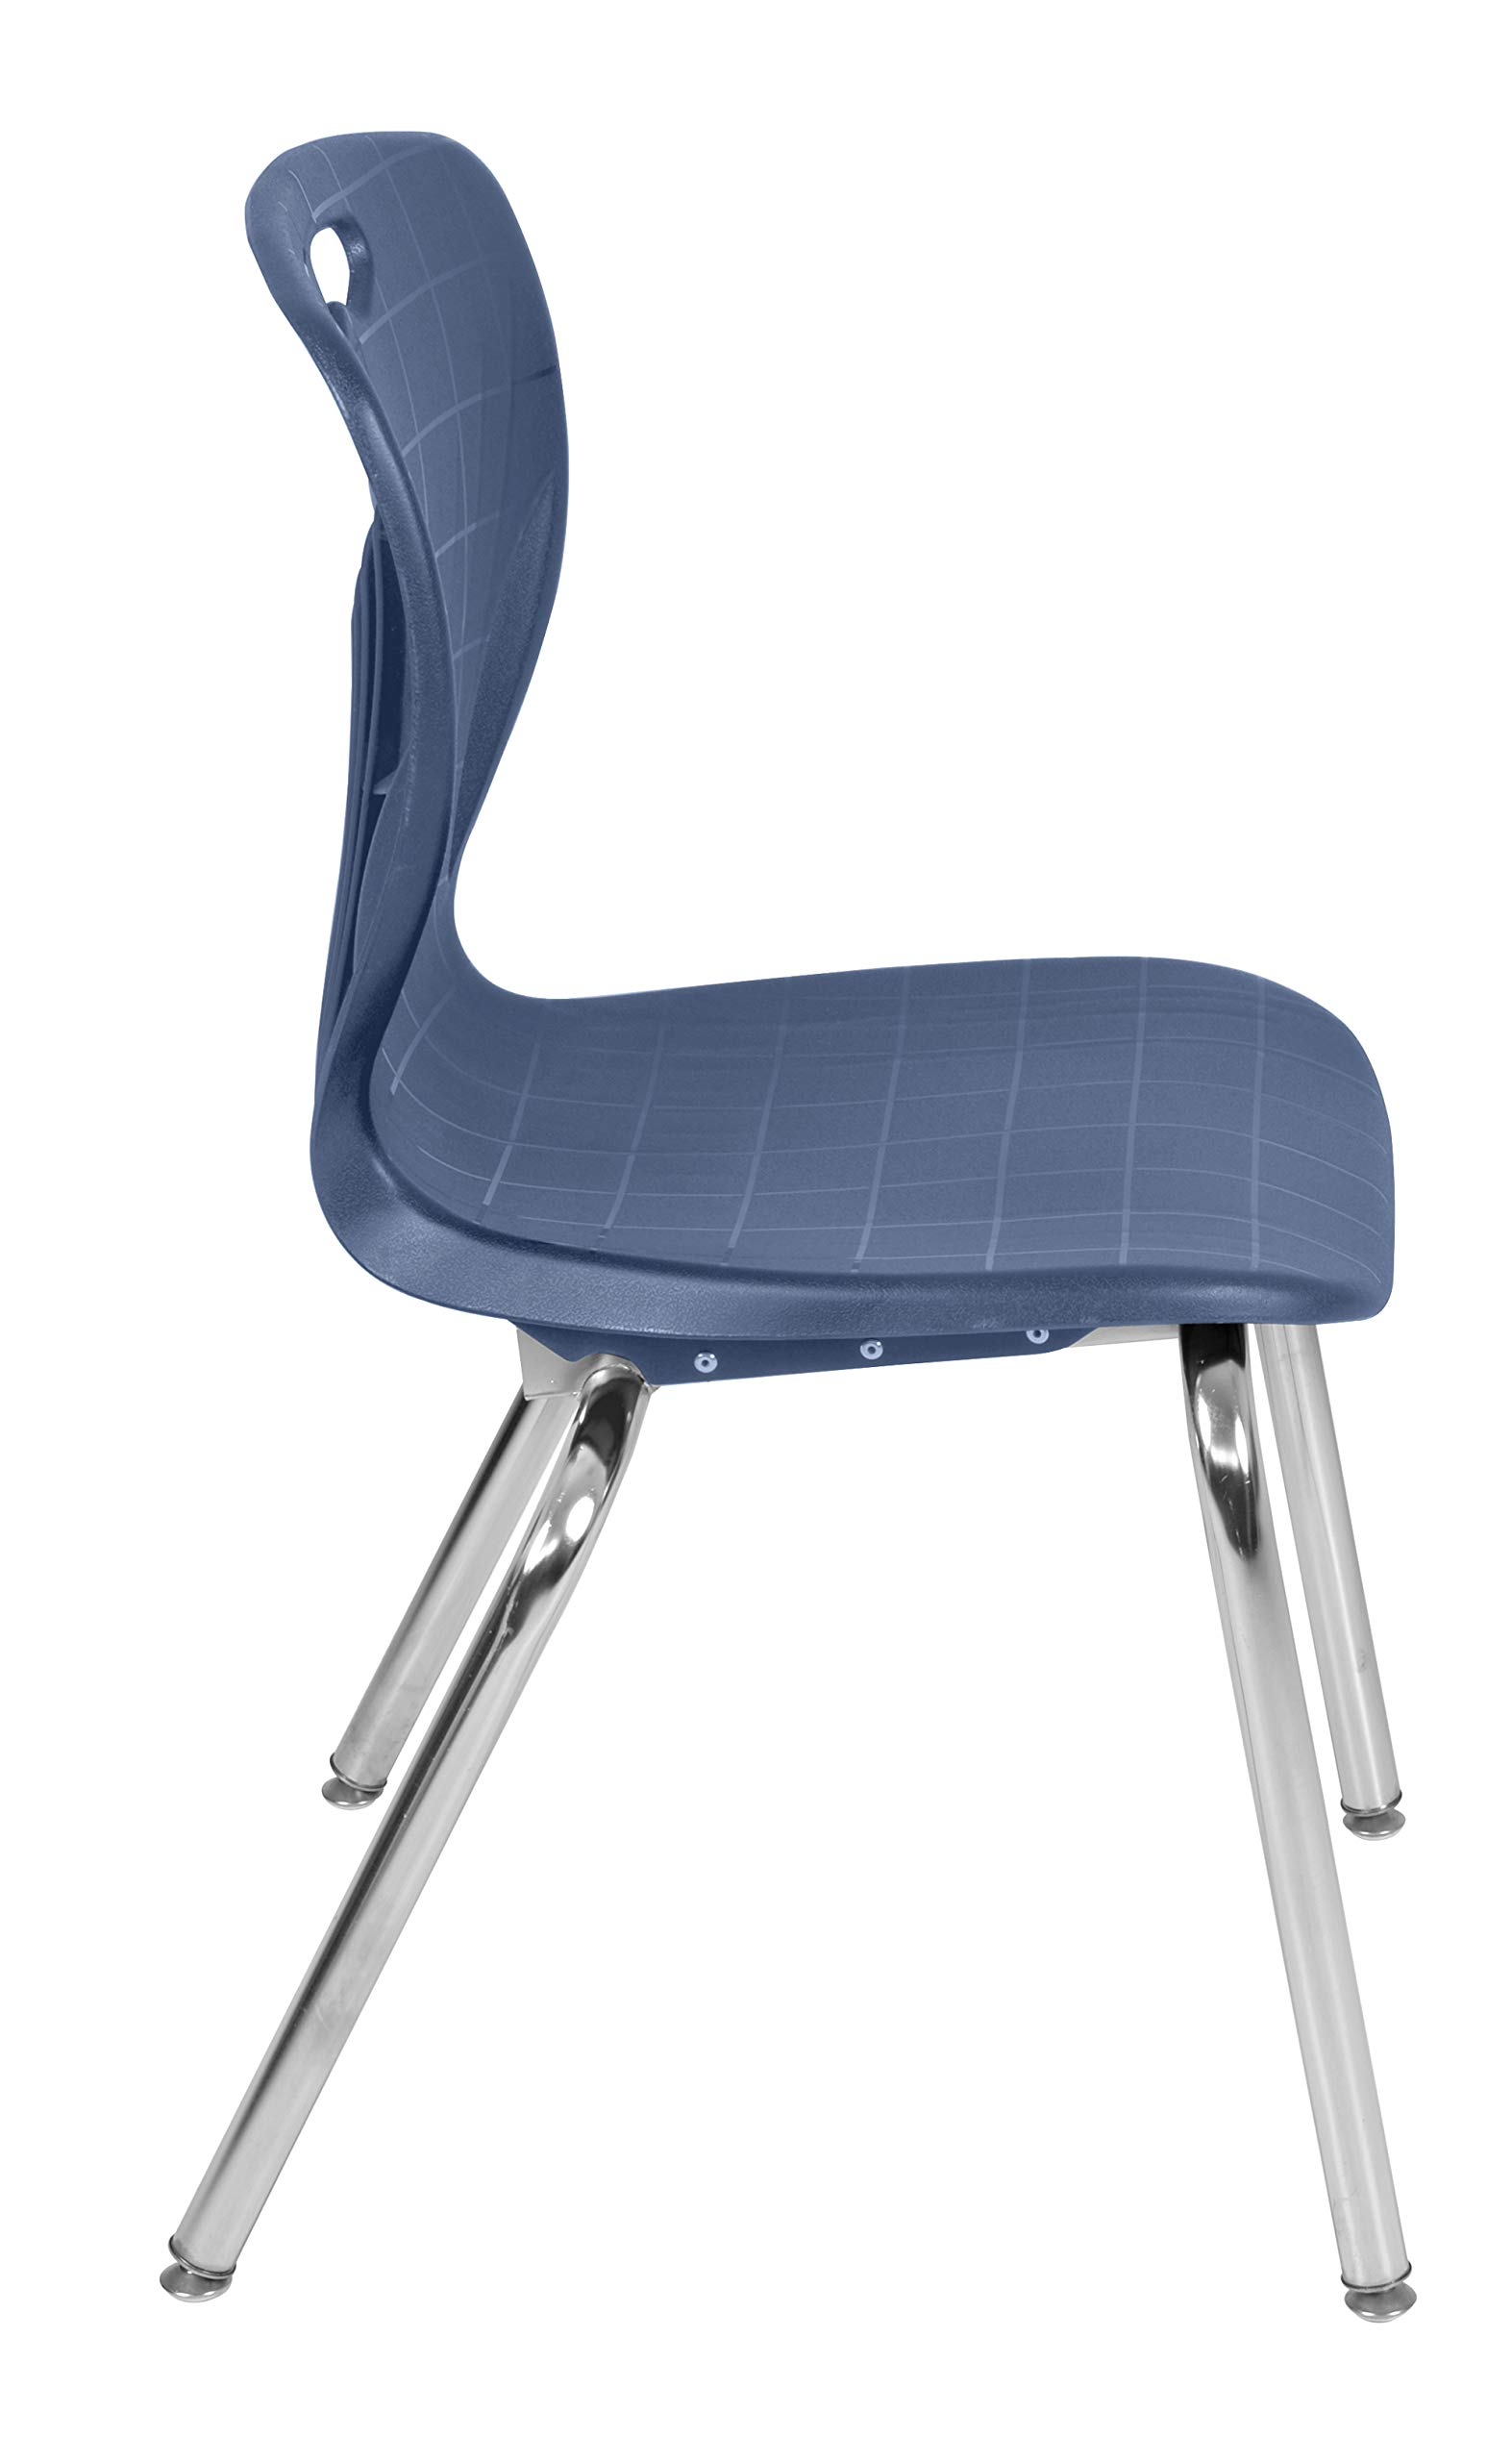 Regency MT4830MWAPCBK40NV Kee Height Adjustable Mobile Classroom Table Set with Two 18'' Andy Chairs 48'' x 30'' Mocha Walnut/Navy Blue by Regency (Image #6)